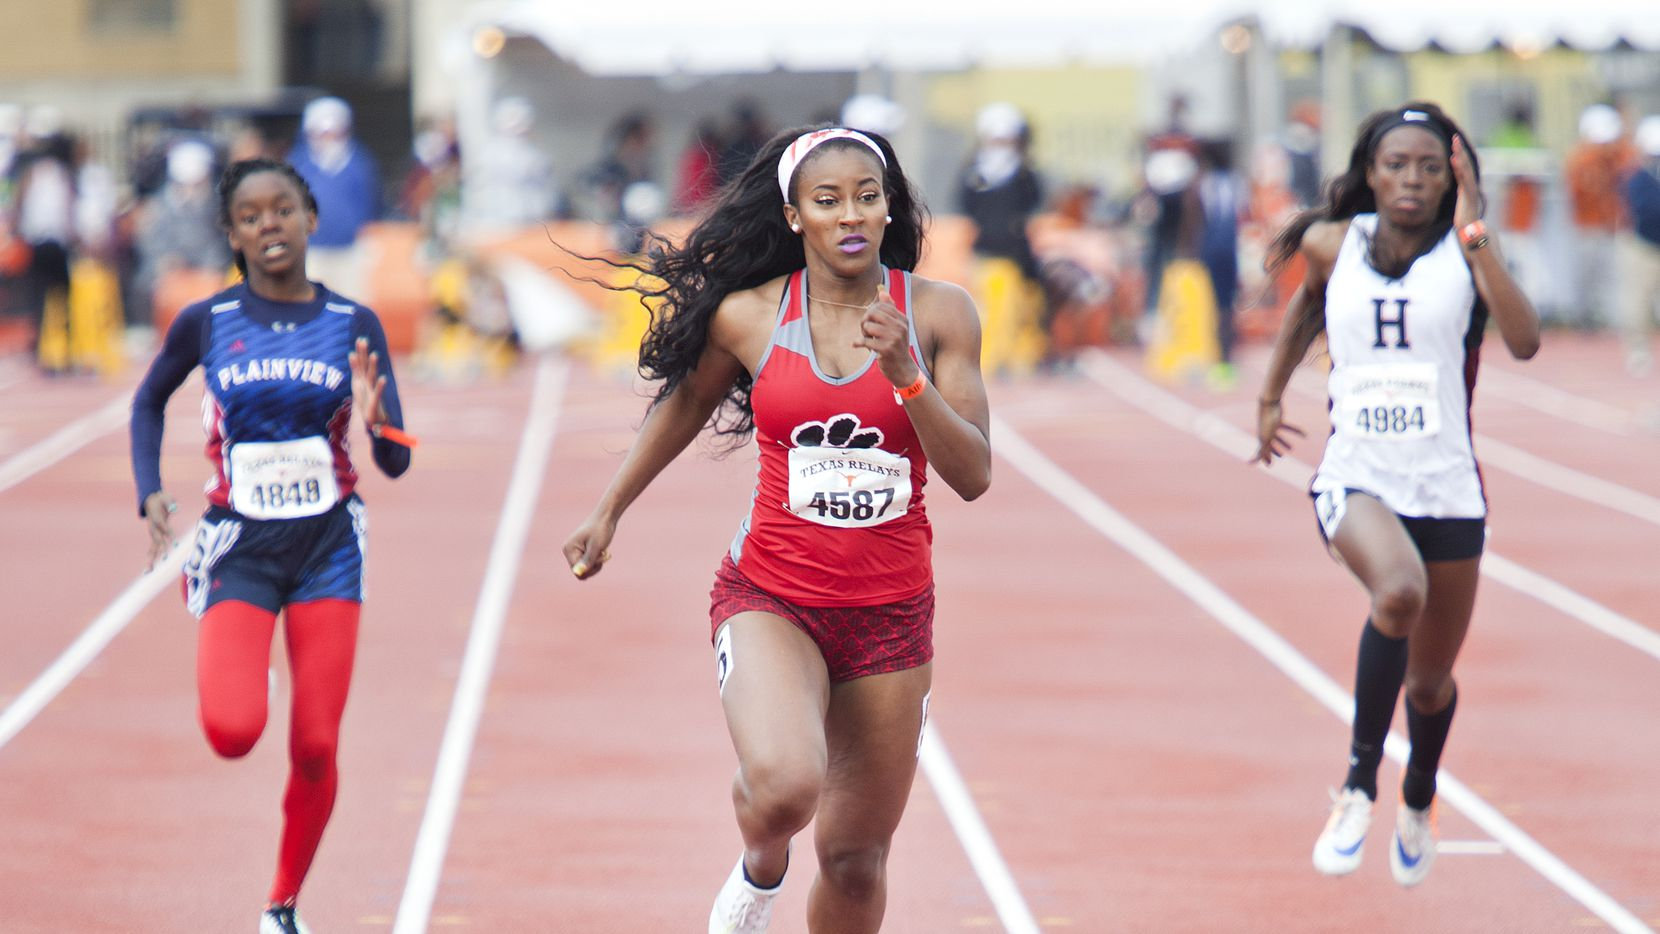 Rockwall Heath's Morgan Burks-Magee, Mesquite Horn's Kaylor Harris, and Plainview's Kaizha Roberts (cq) compete in the Division 2 of the Girls 100 meter dash prelims during the Texas Relays at the Mike A. Myers Stadium in Austin, Texas on April 1, 2016.